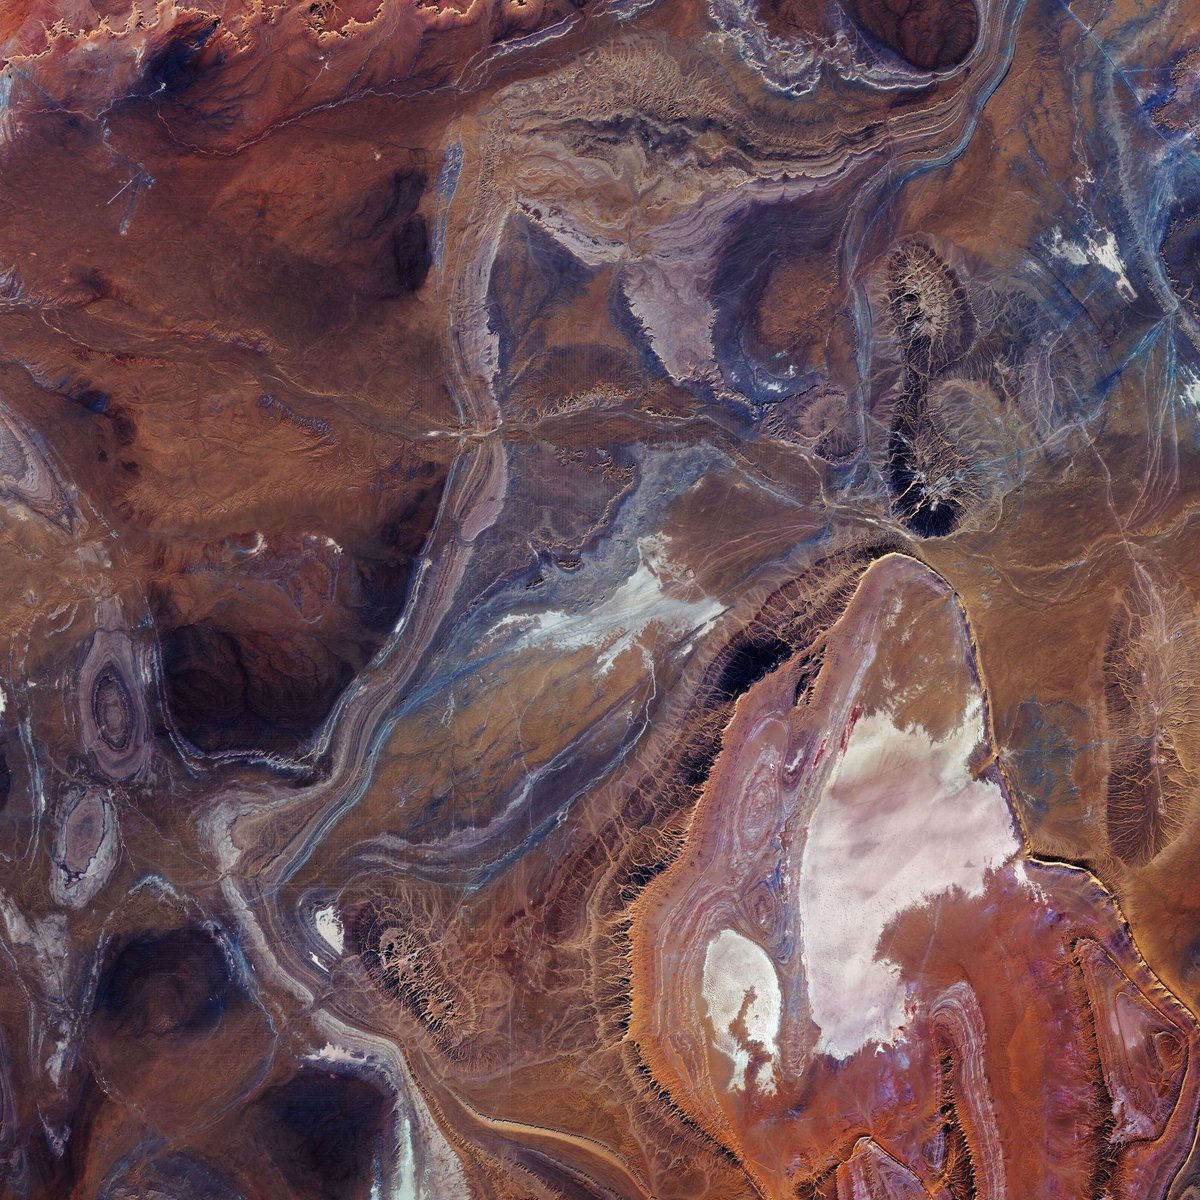 This @CopernicusEU #Sentinel2 image shows the Tanezrouft Basin – one of the most desolate parts of the #Sahara desert. Zoom in at the link to see this image at its full 10 m resolution 👉 esa.int/ESA_Multimedia…